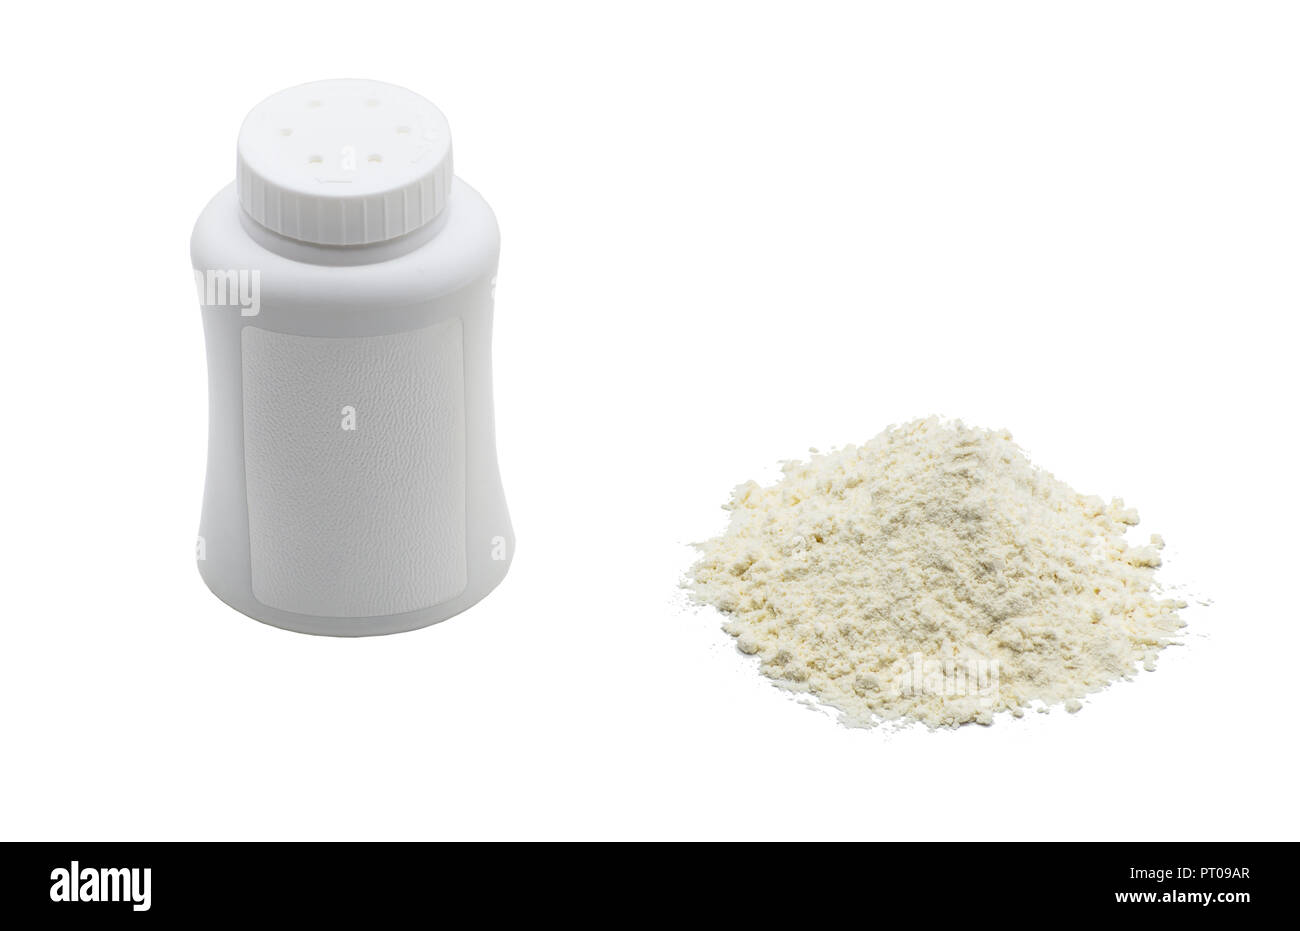 Talcum powder, next to is the white container, isolated on a white background with a clipping path. - Stock Image